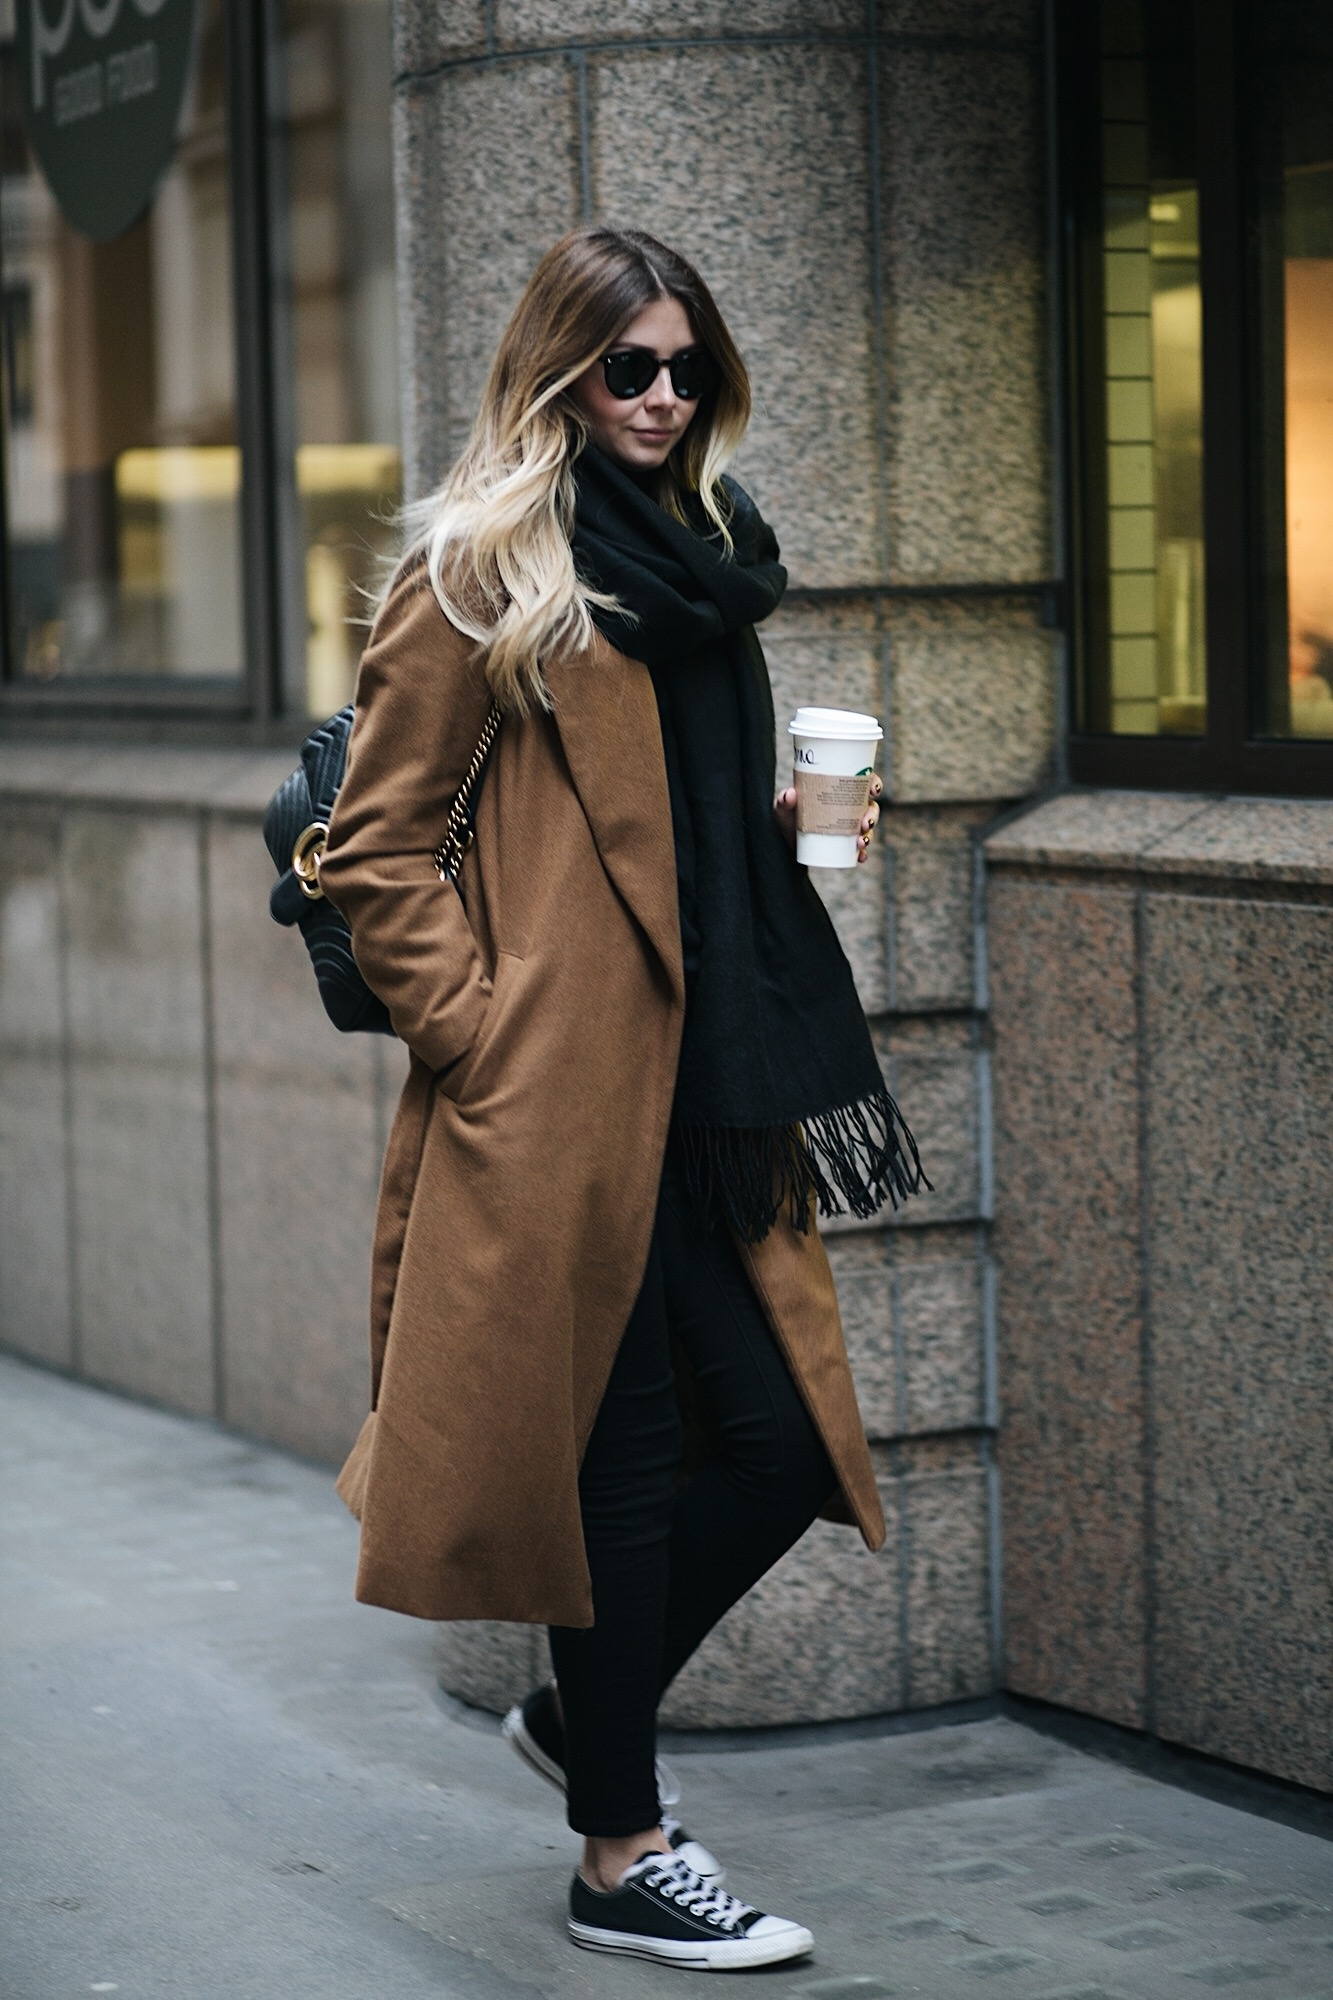 EJ STYLE - Winter outfit, camel coat, black skinny jeans, black scarf, black low Converse, Gucci Marmont bag